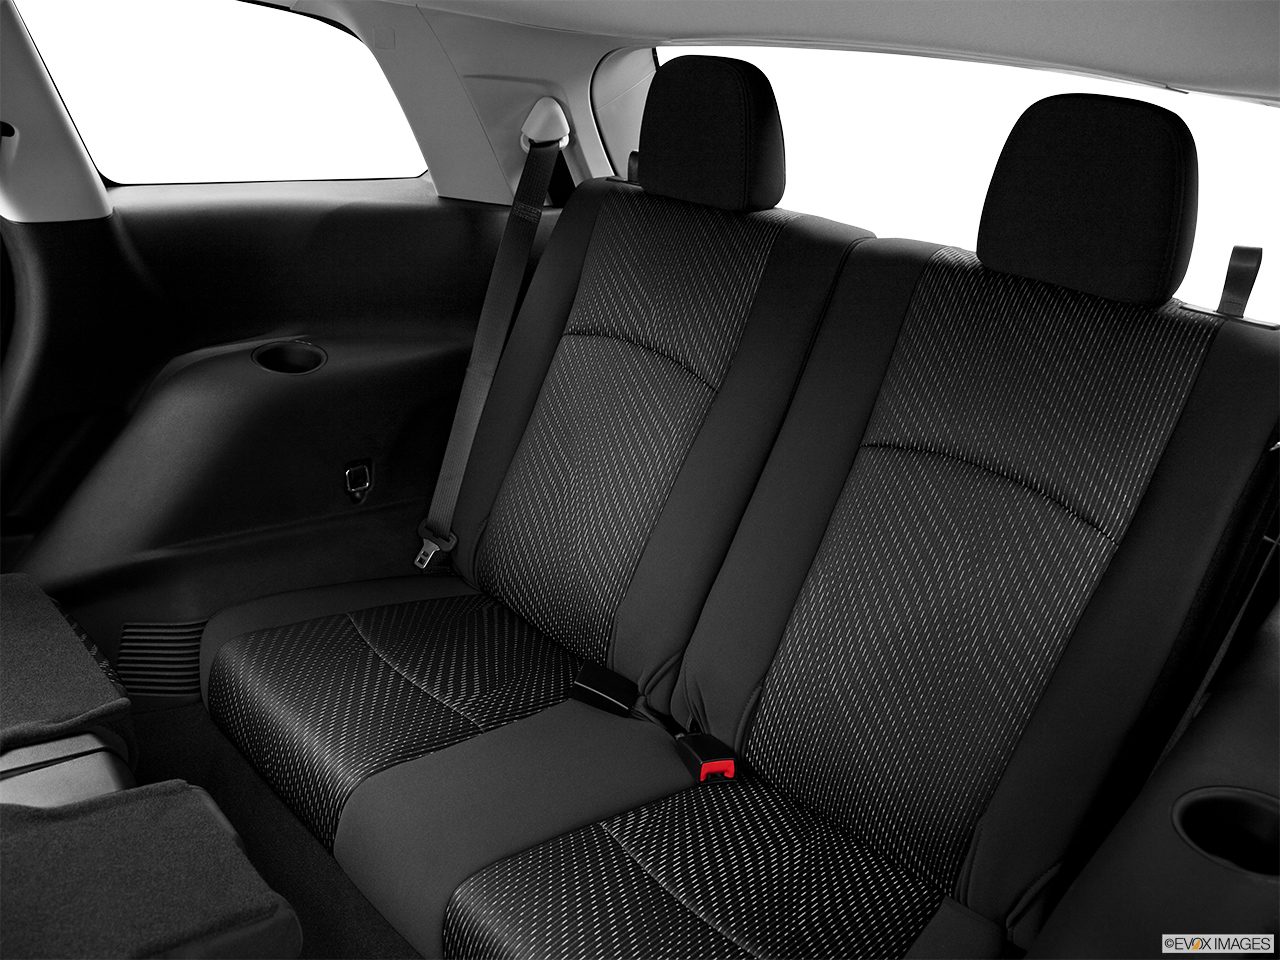 2015 Dodge Journey AWD 4 Door SXT   3rd Row Seat From Driver Side